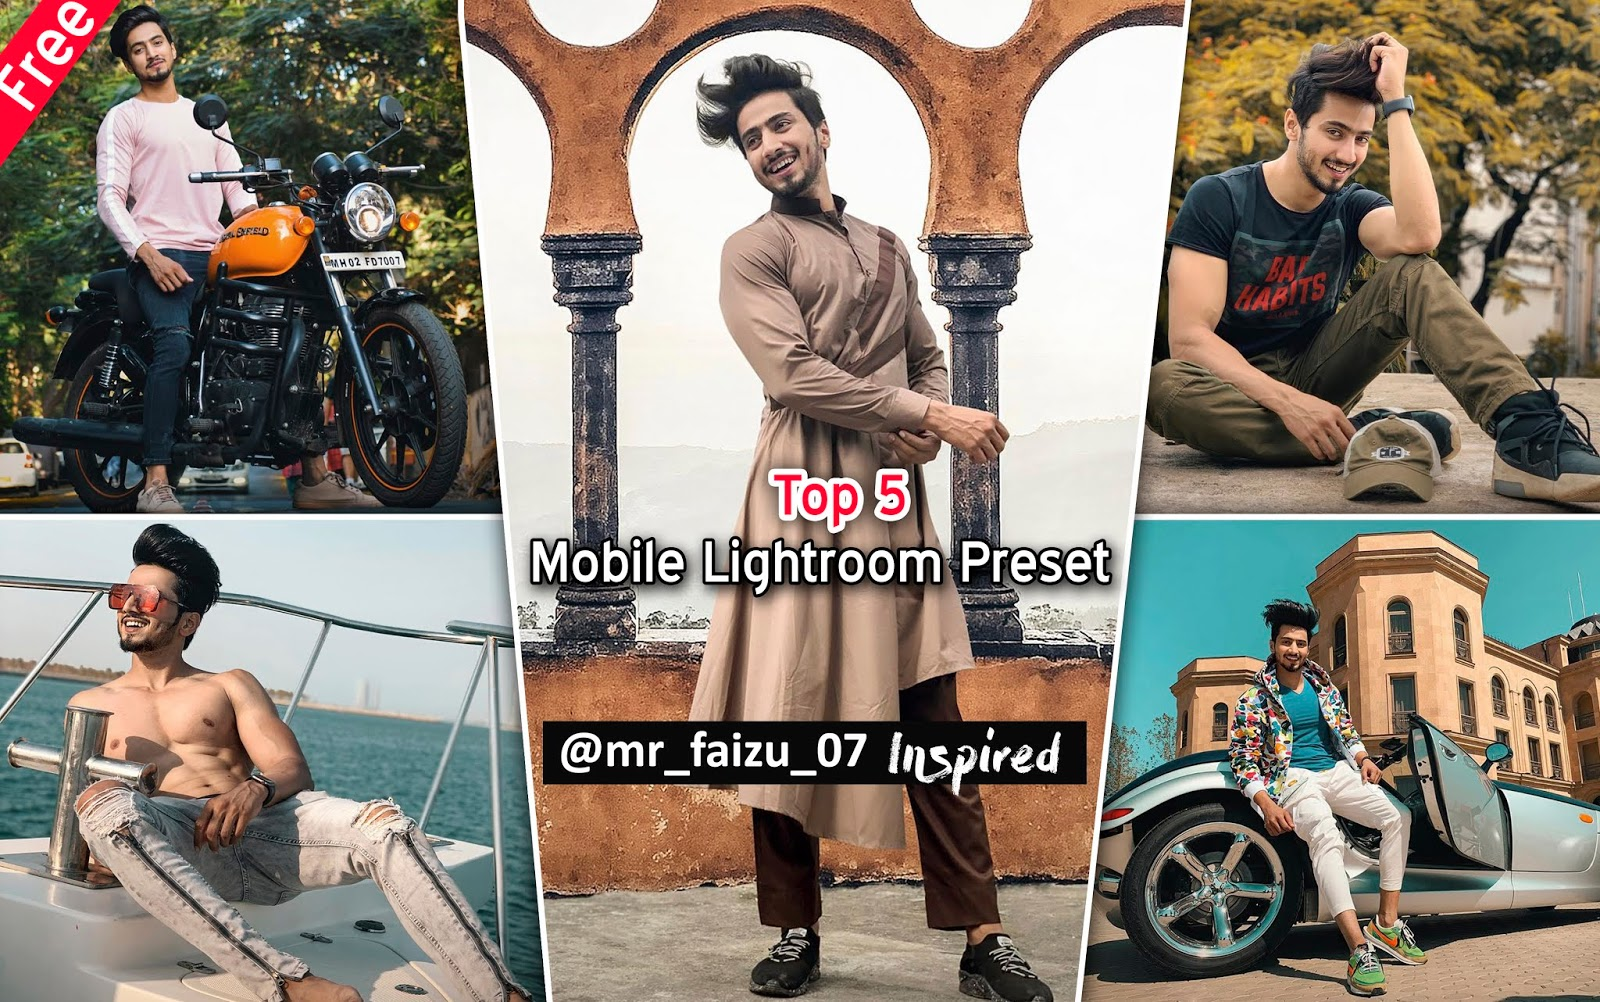 Download Top 5 @Mr.Faizu_07 Mobile Lightroom Preset for Free | How to Edit Photos Like @Mr.Faizal Shaikh in Mobile Lightroom App